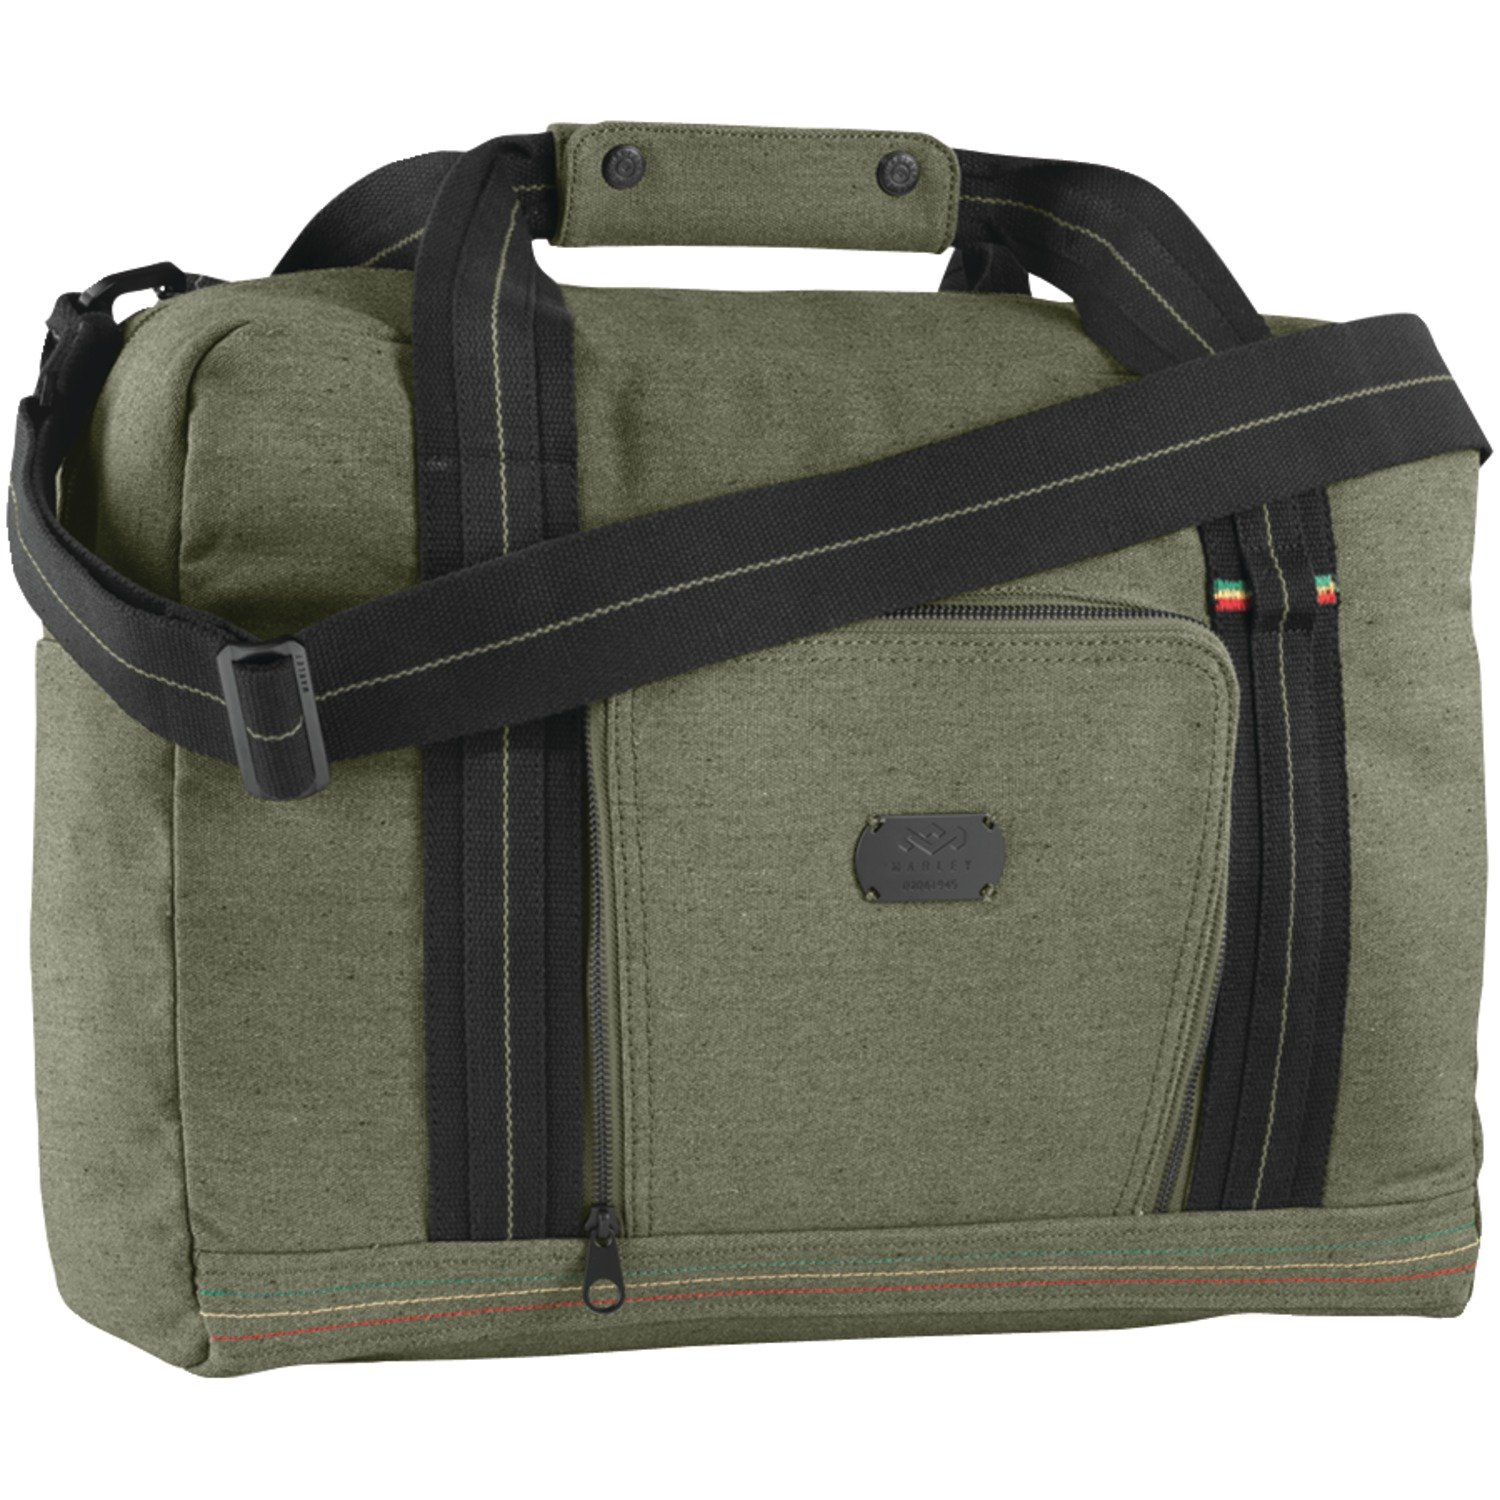 House of Marley, Lively Up Overnighter Bag, Padded External Laptop Pocket, 19.5in x 11.75in x 7.75in, Removable Shoulder Strap, Made of Hemp and Organic Cotton, BM-JD000-MT Military